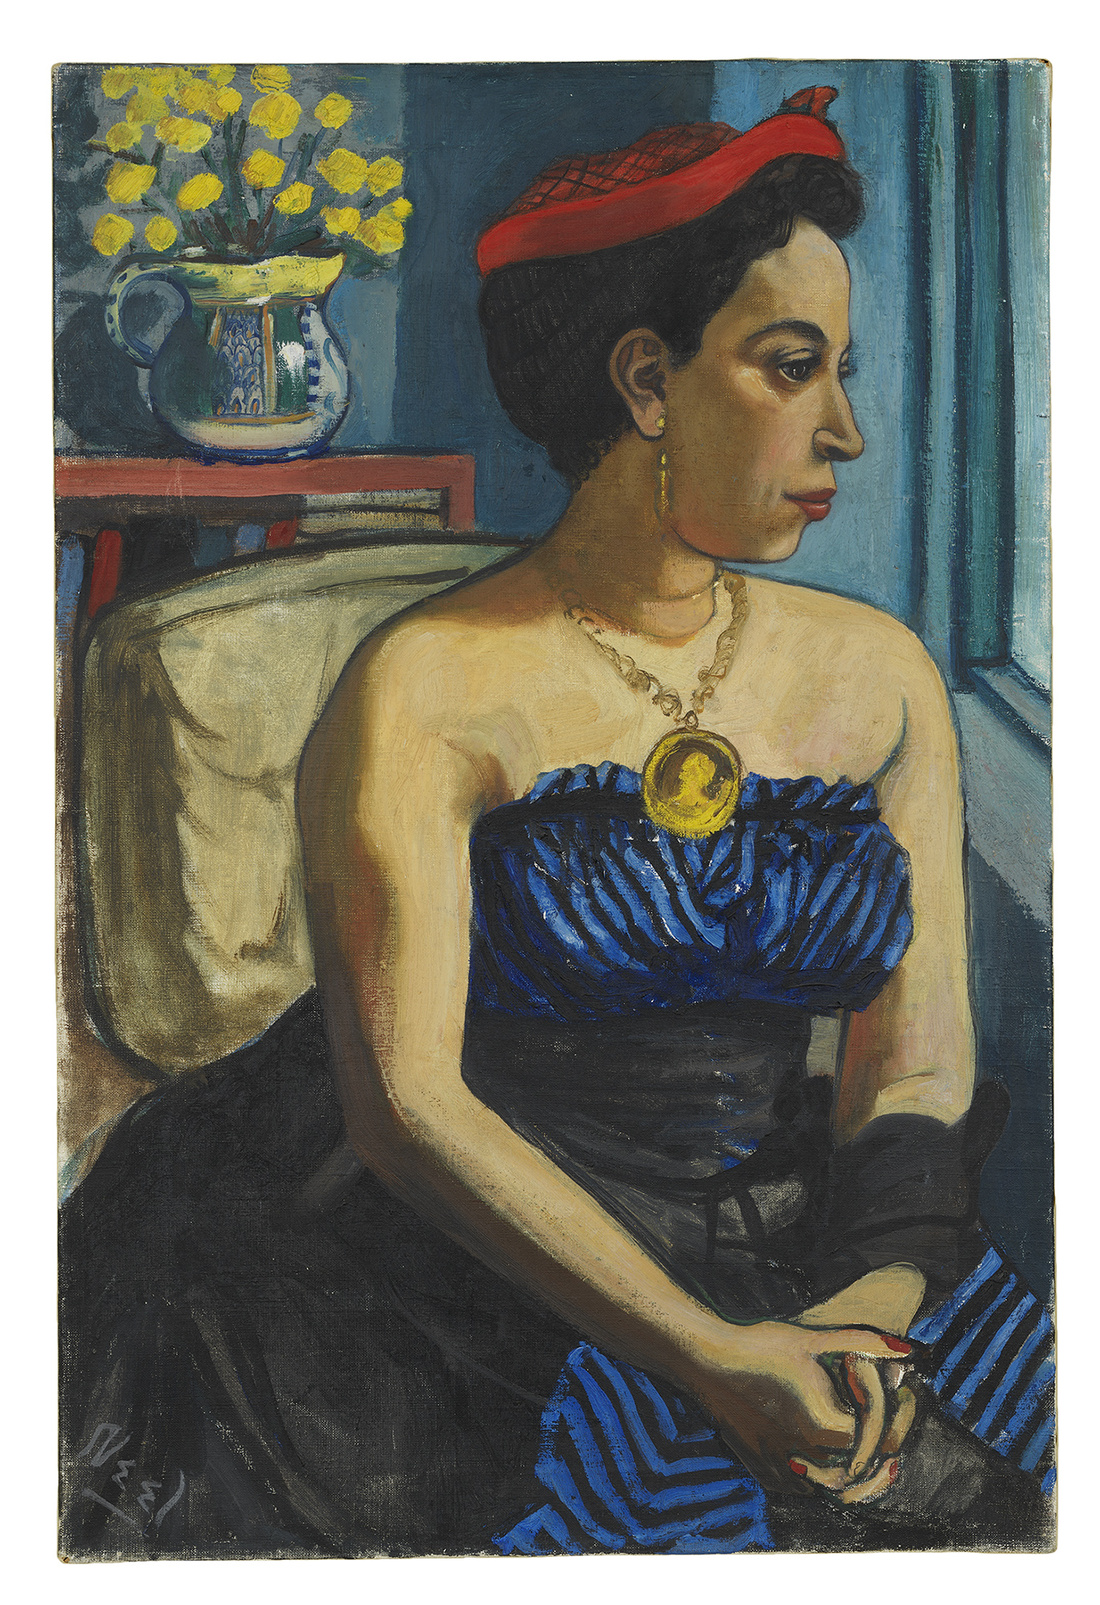 Alice Neel, Alice Childress, 1950. Collection of Art Berliner. © The Estate of Alice Neel. Courtesy David Zwirner, New York/London and Victoria Miro, London.